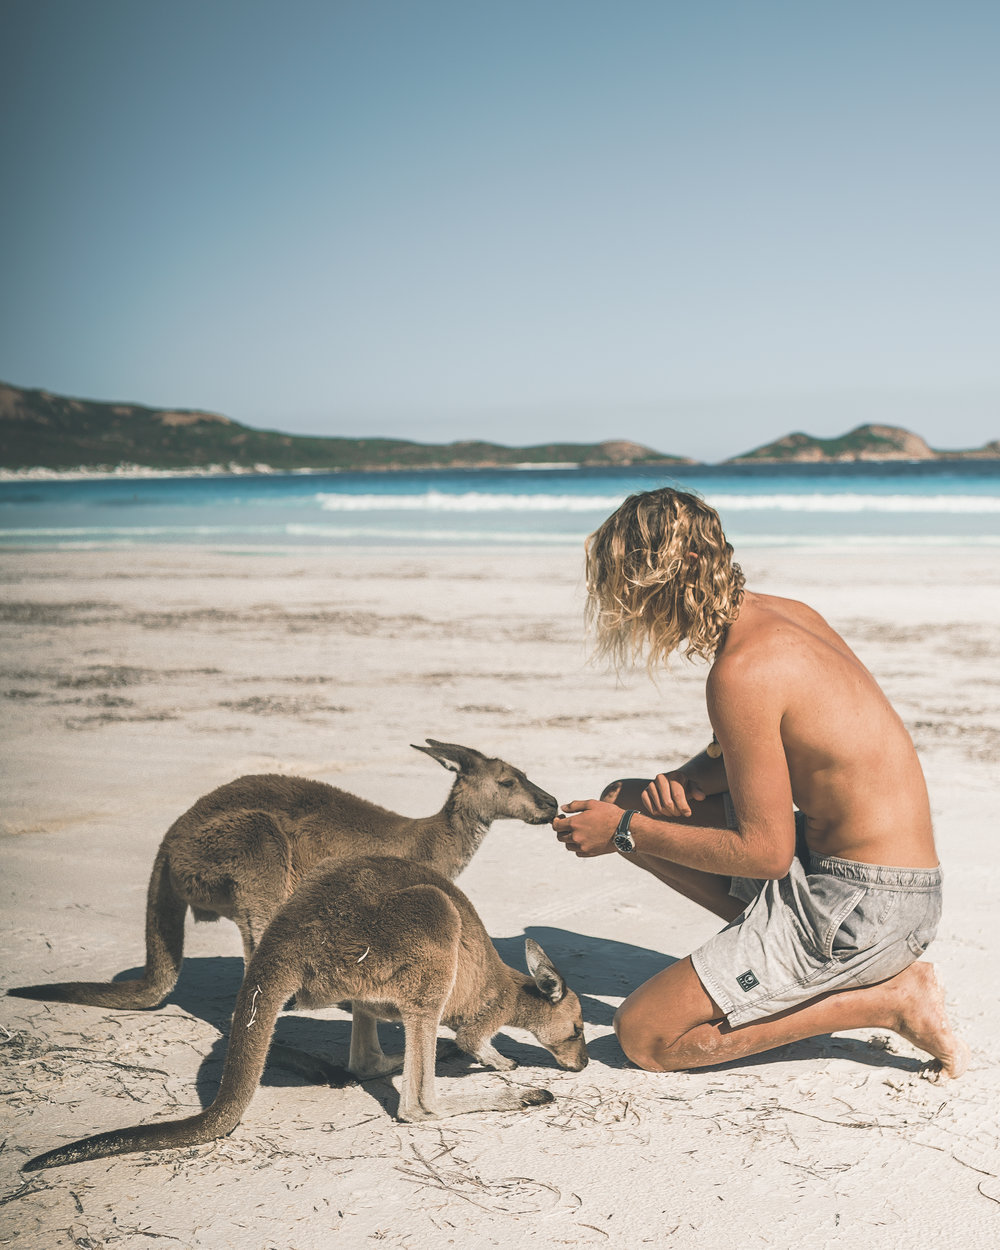 One of the coolest beaches is Lucky Bay, the Kangaroos just cruise about on the waters edge...Pretty insane!